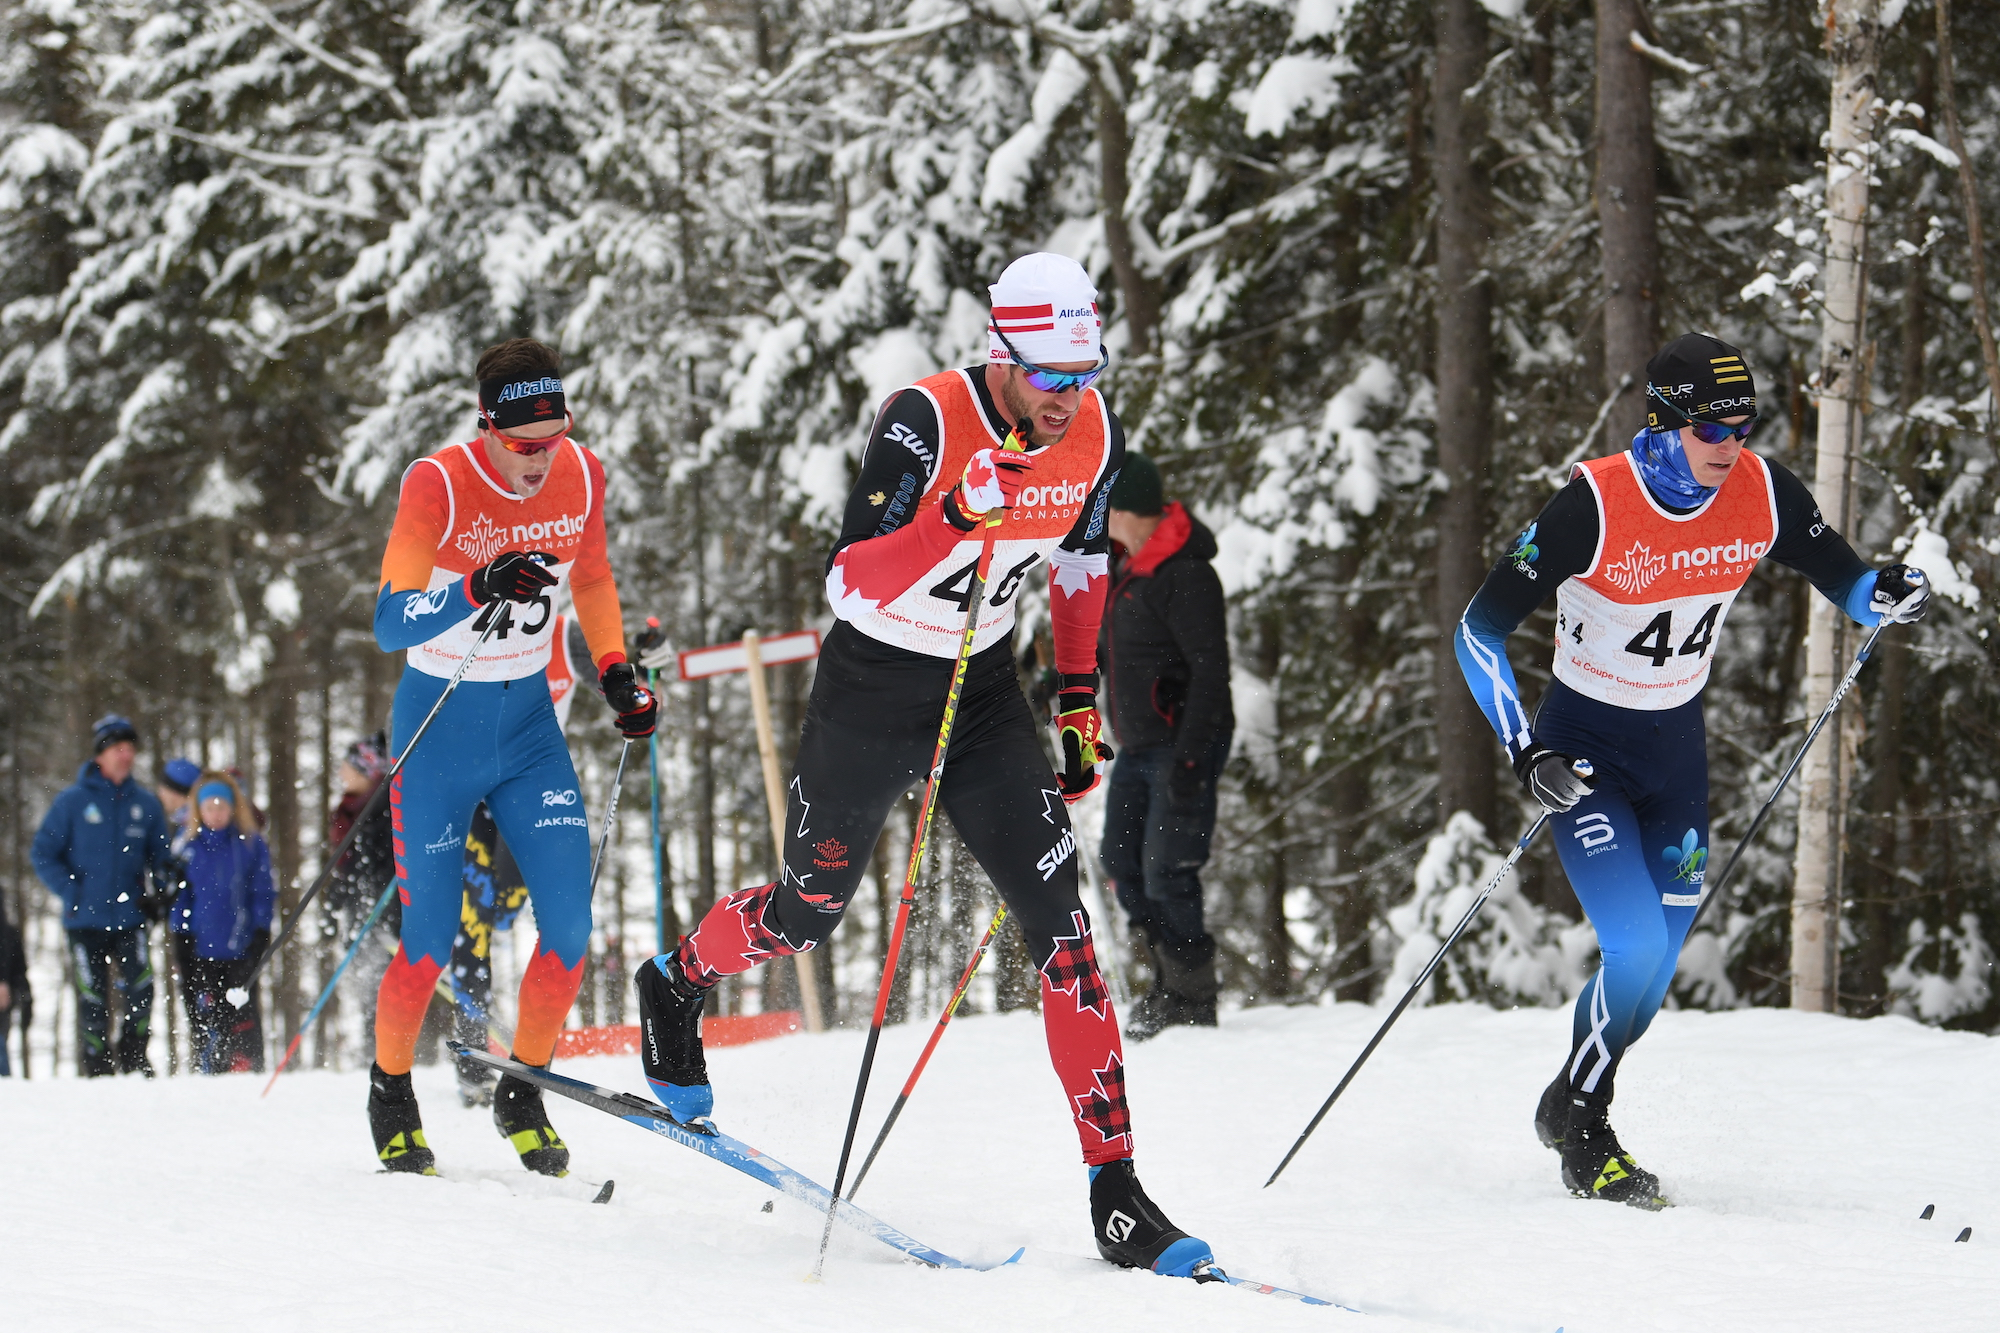 Russell Kennedy (#46) caught Sam Hendry (#45) and Nicolas Beaulieu (#44) on his way to third place in the 15km. (Photo: Doug Stephen)